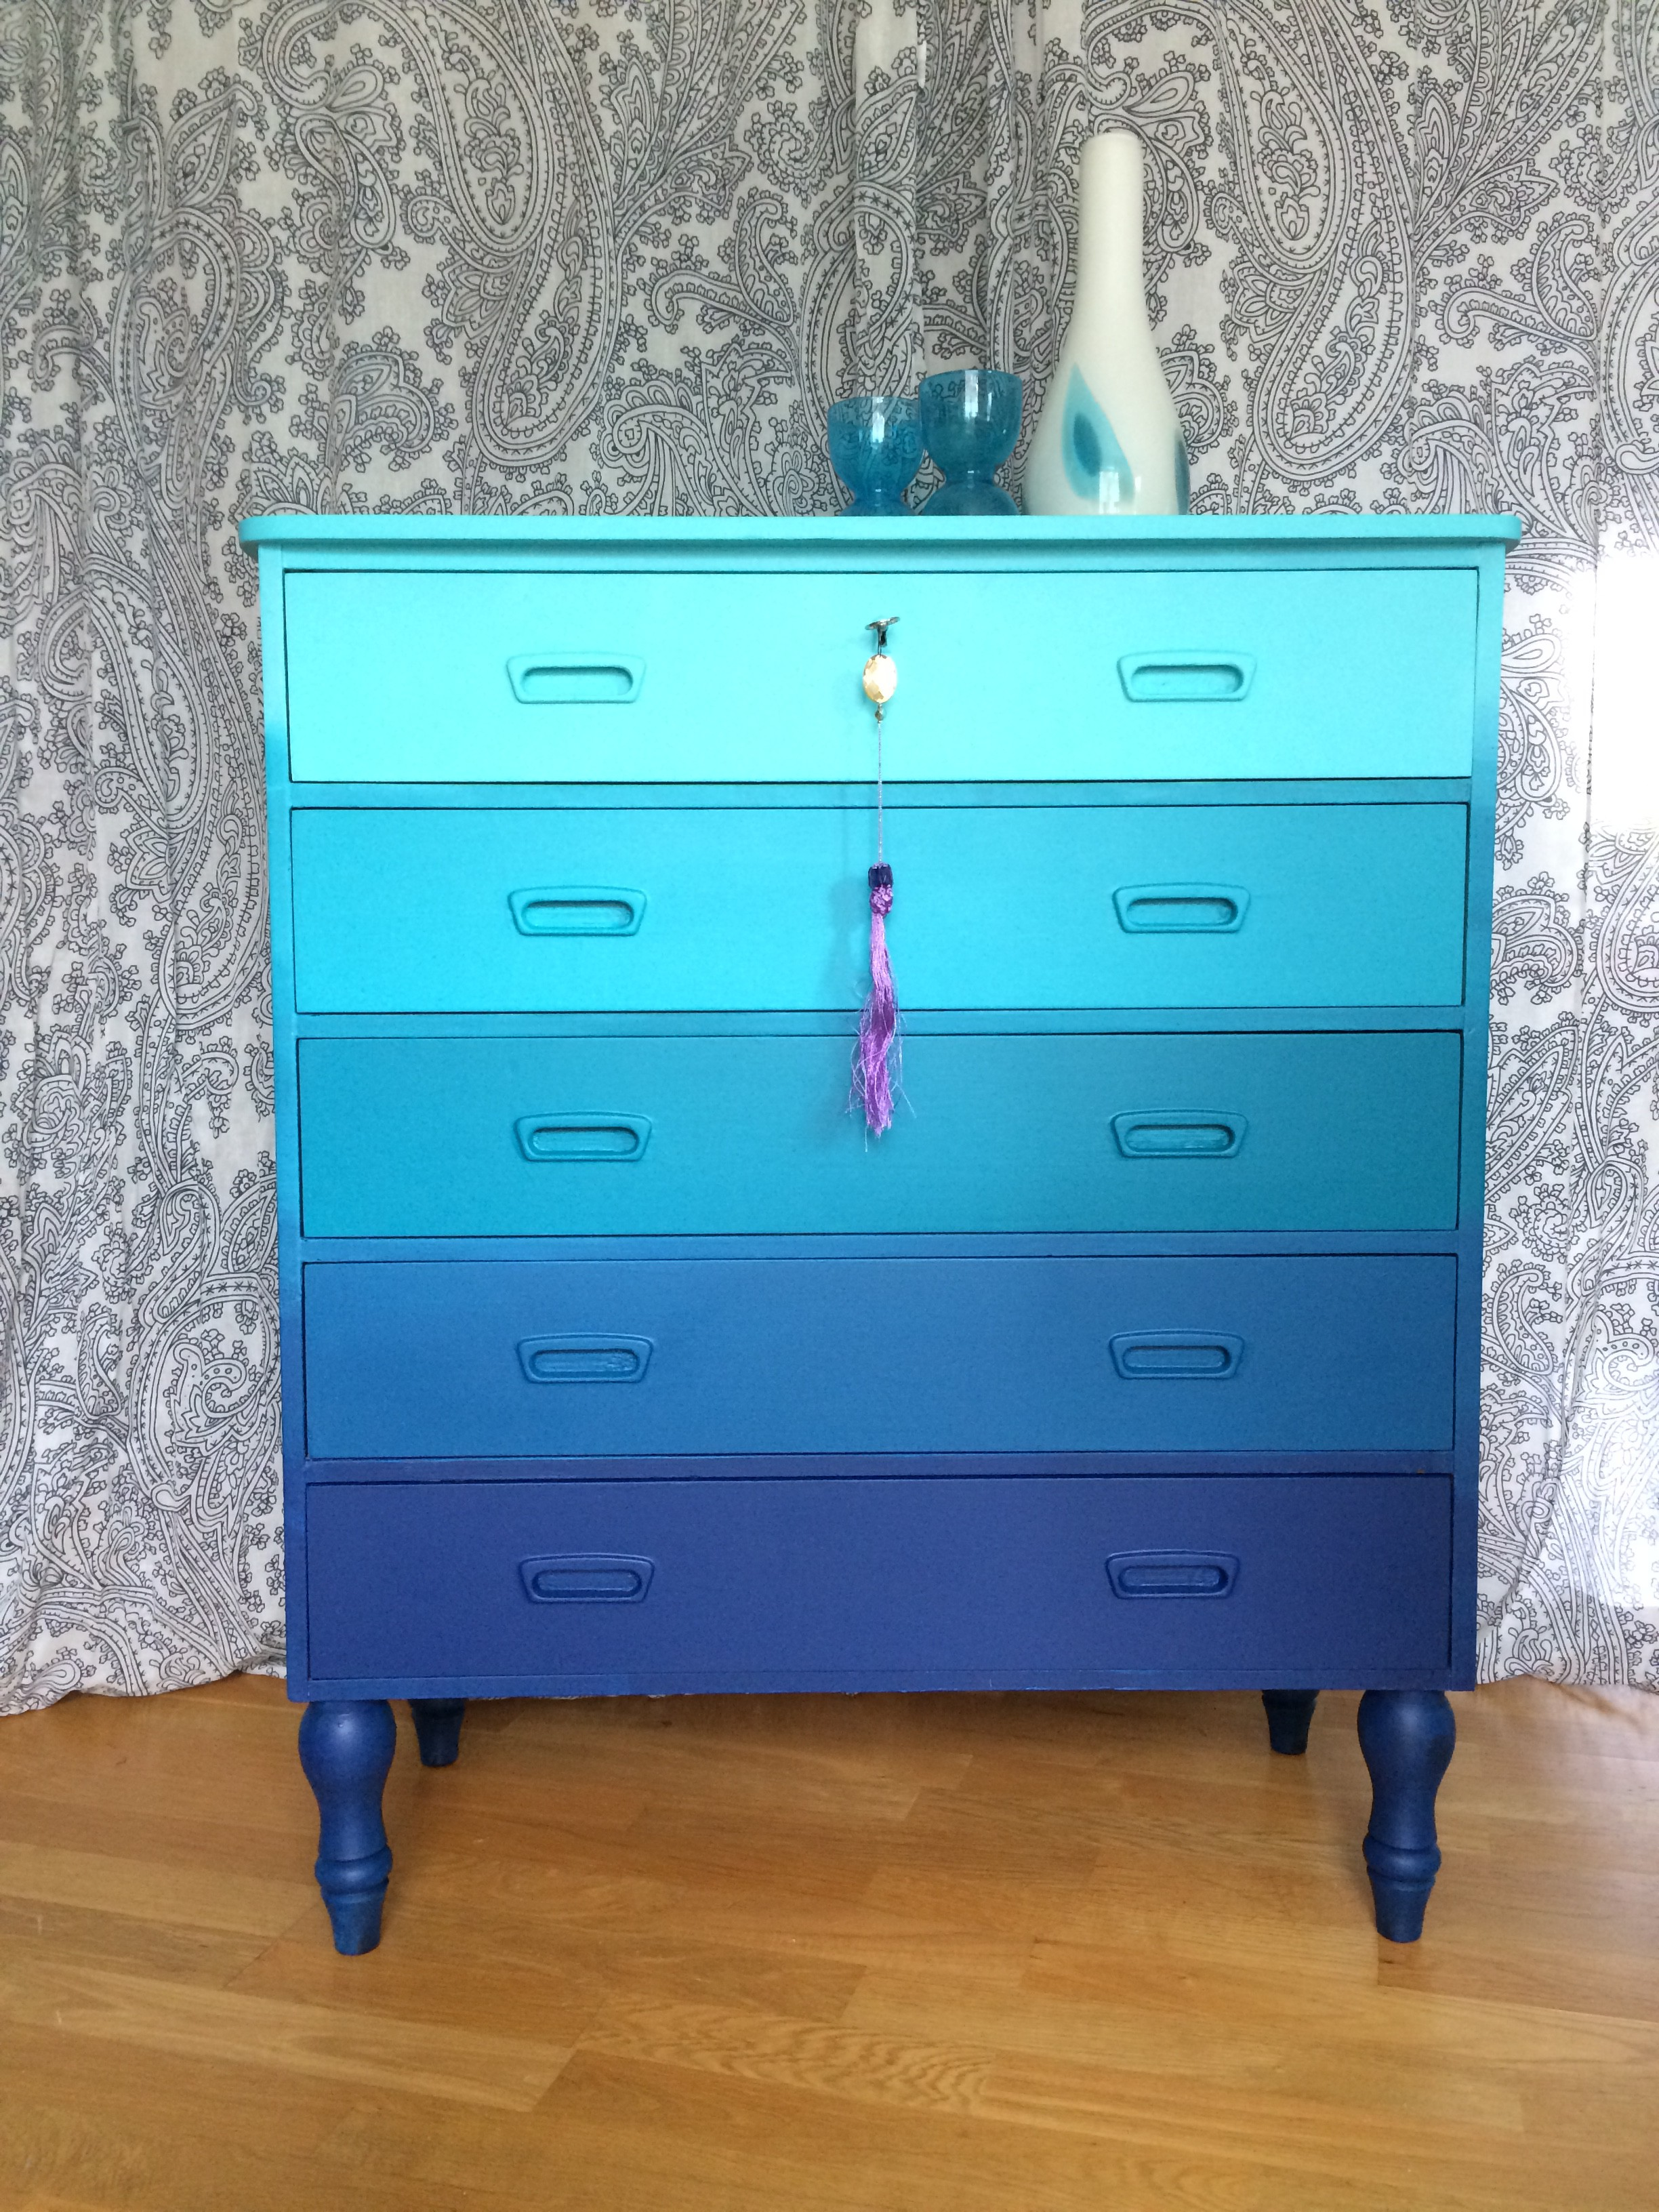 content turq chest furniture turquoise of gallery paprika pulls flf index wp